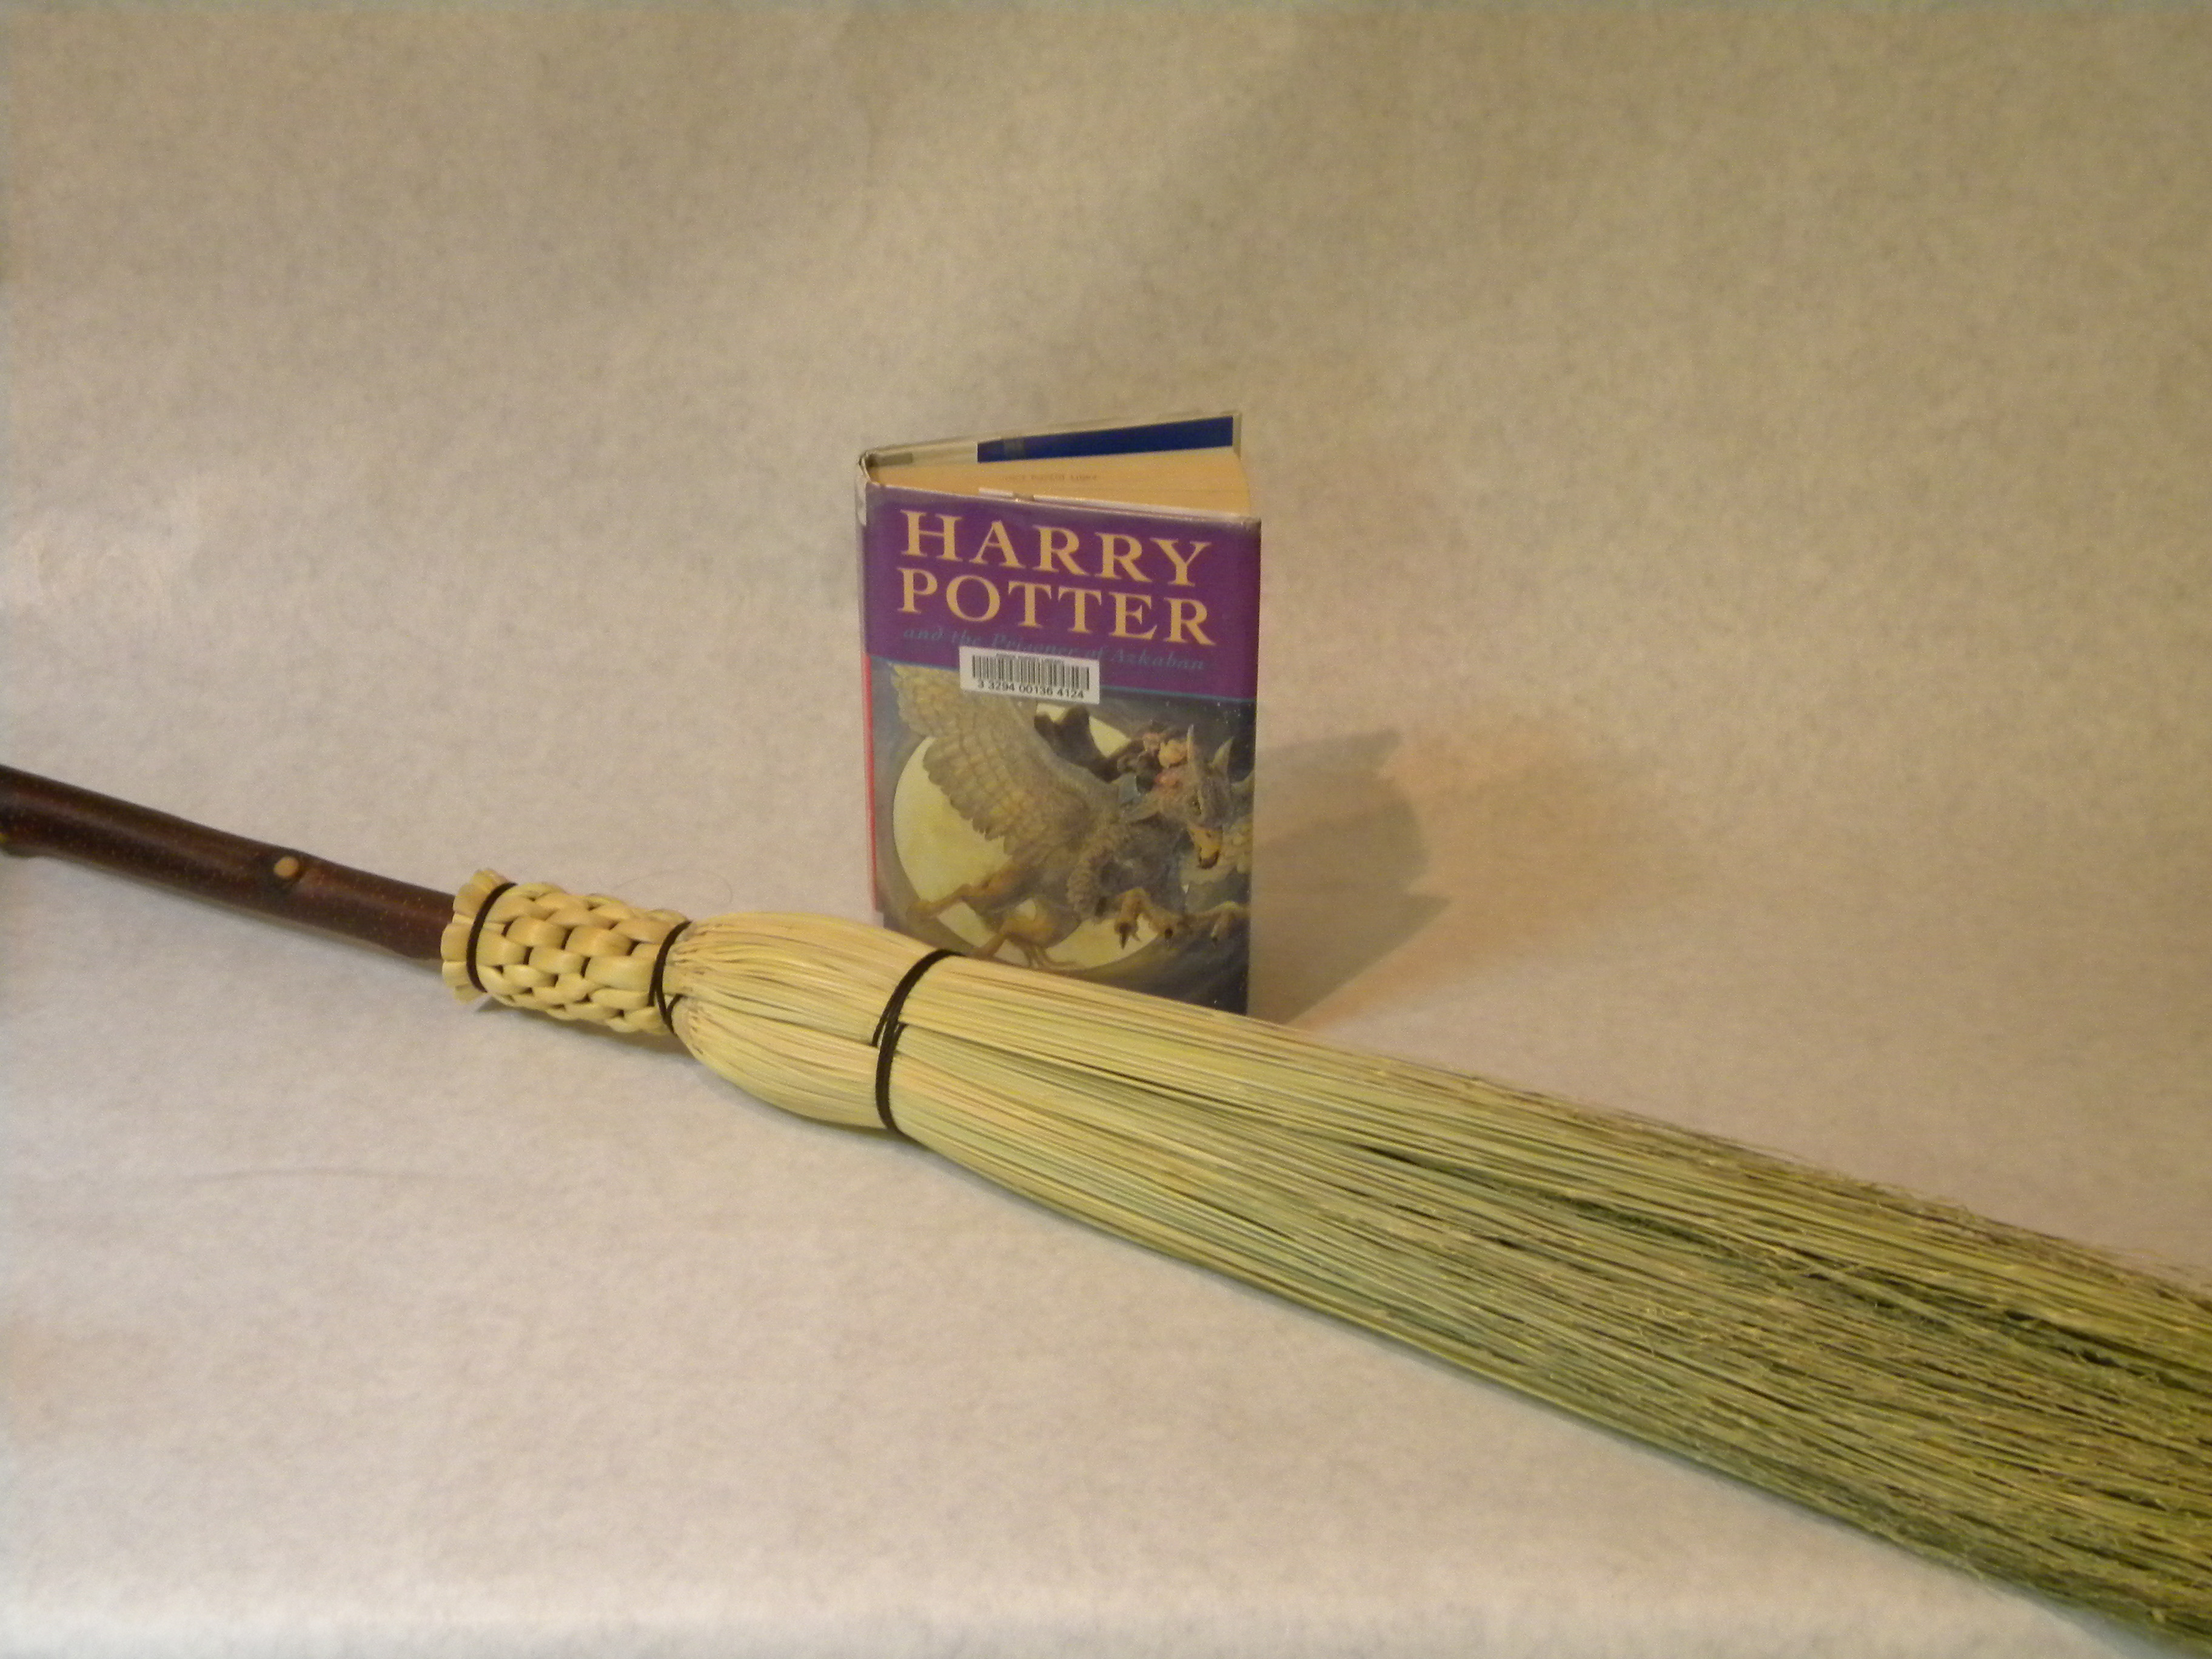 Harry potter quidditch broom